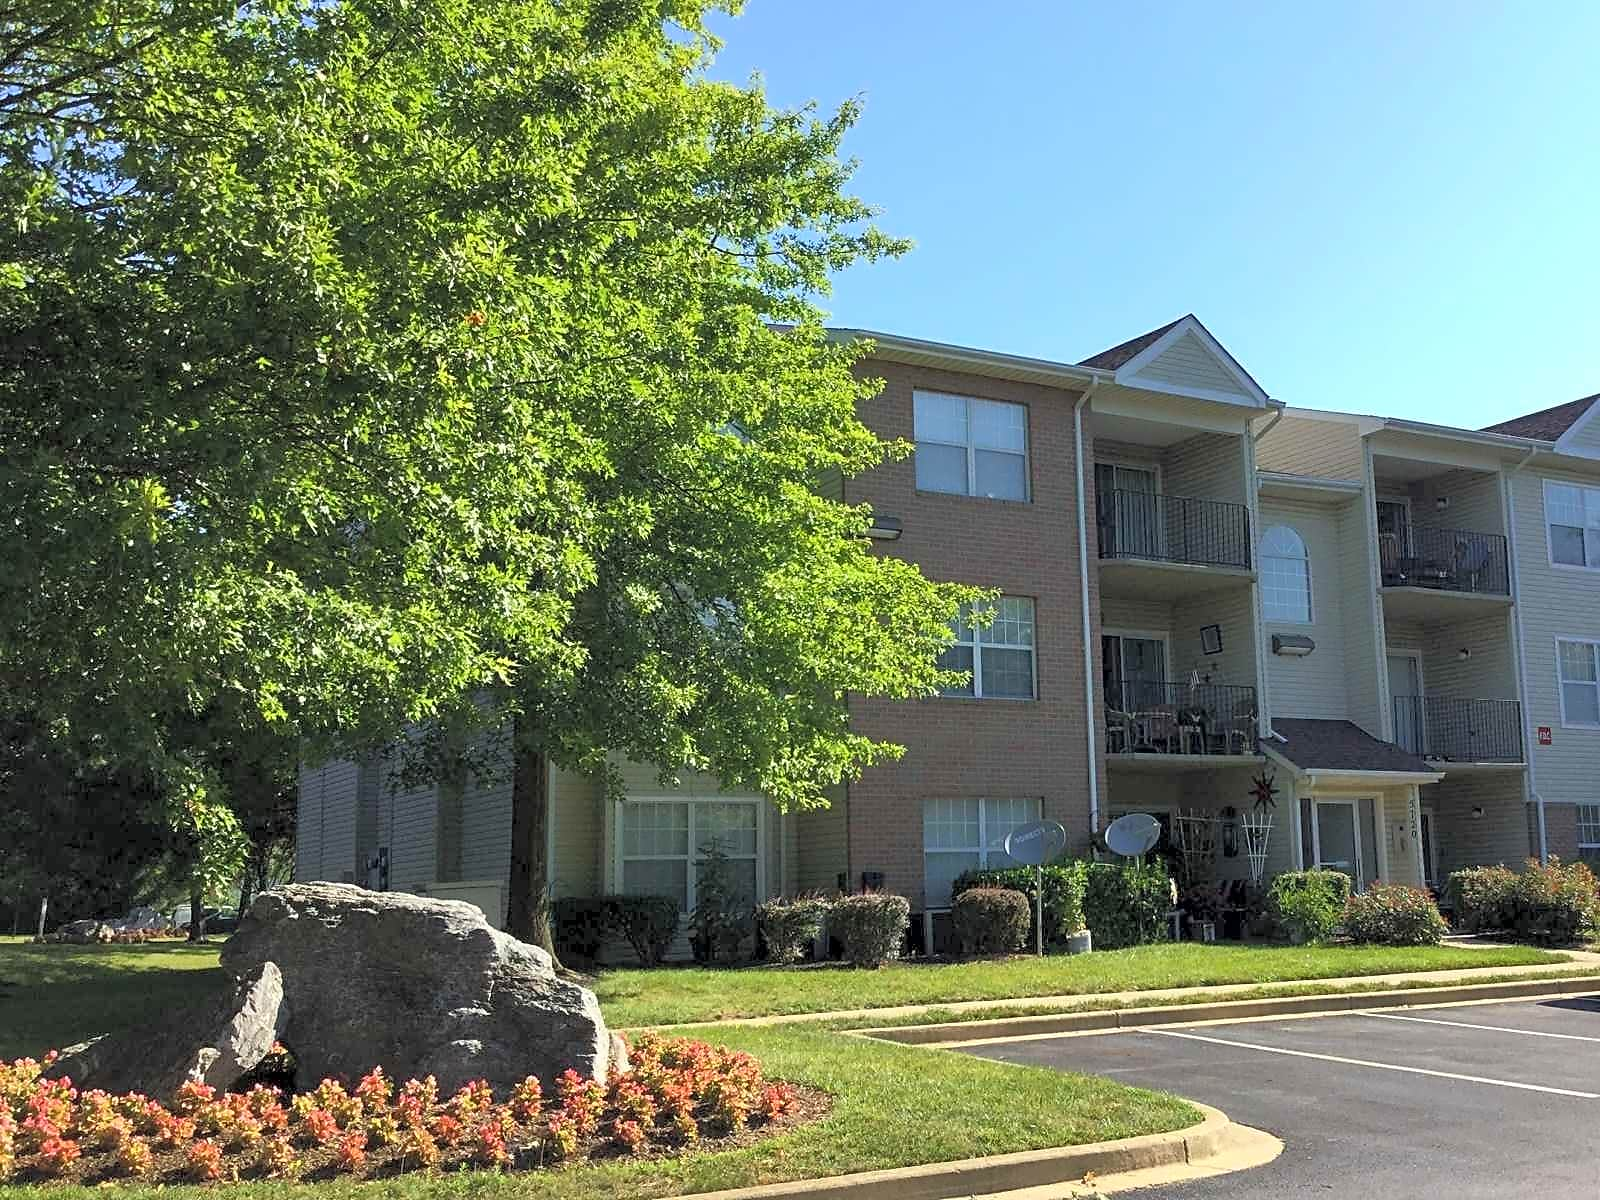 Apartments Near FCC Mountain Glen Apartments for Frederick Community College Students in Frederick, MD